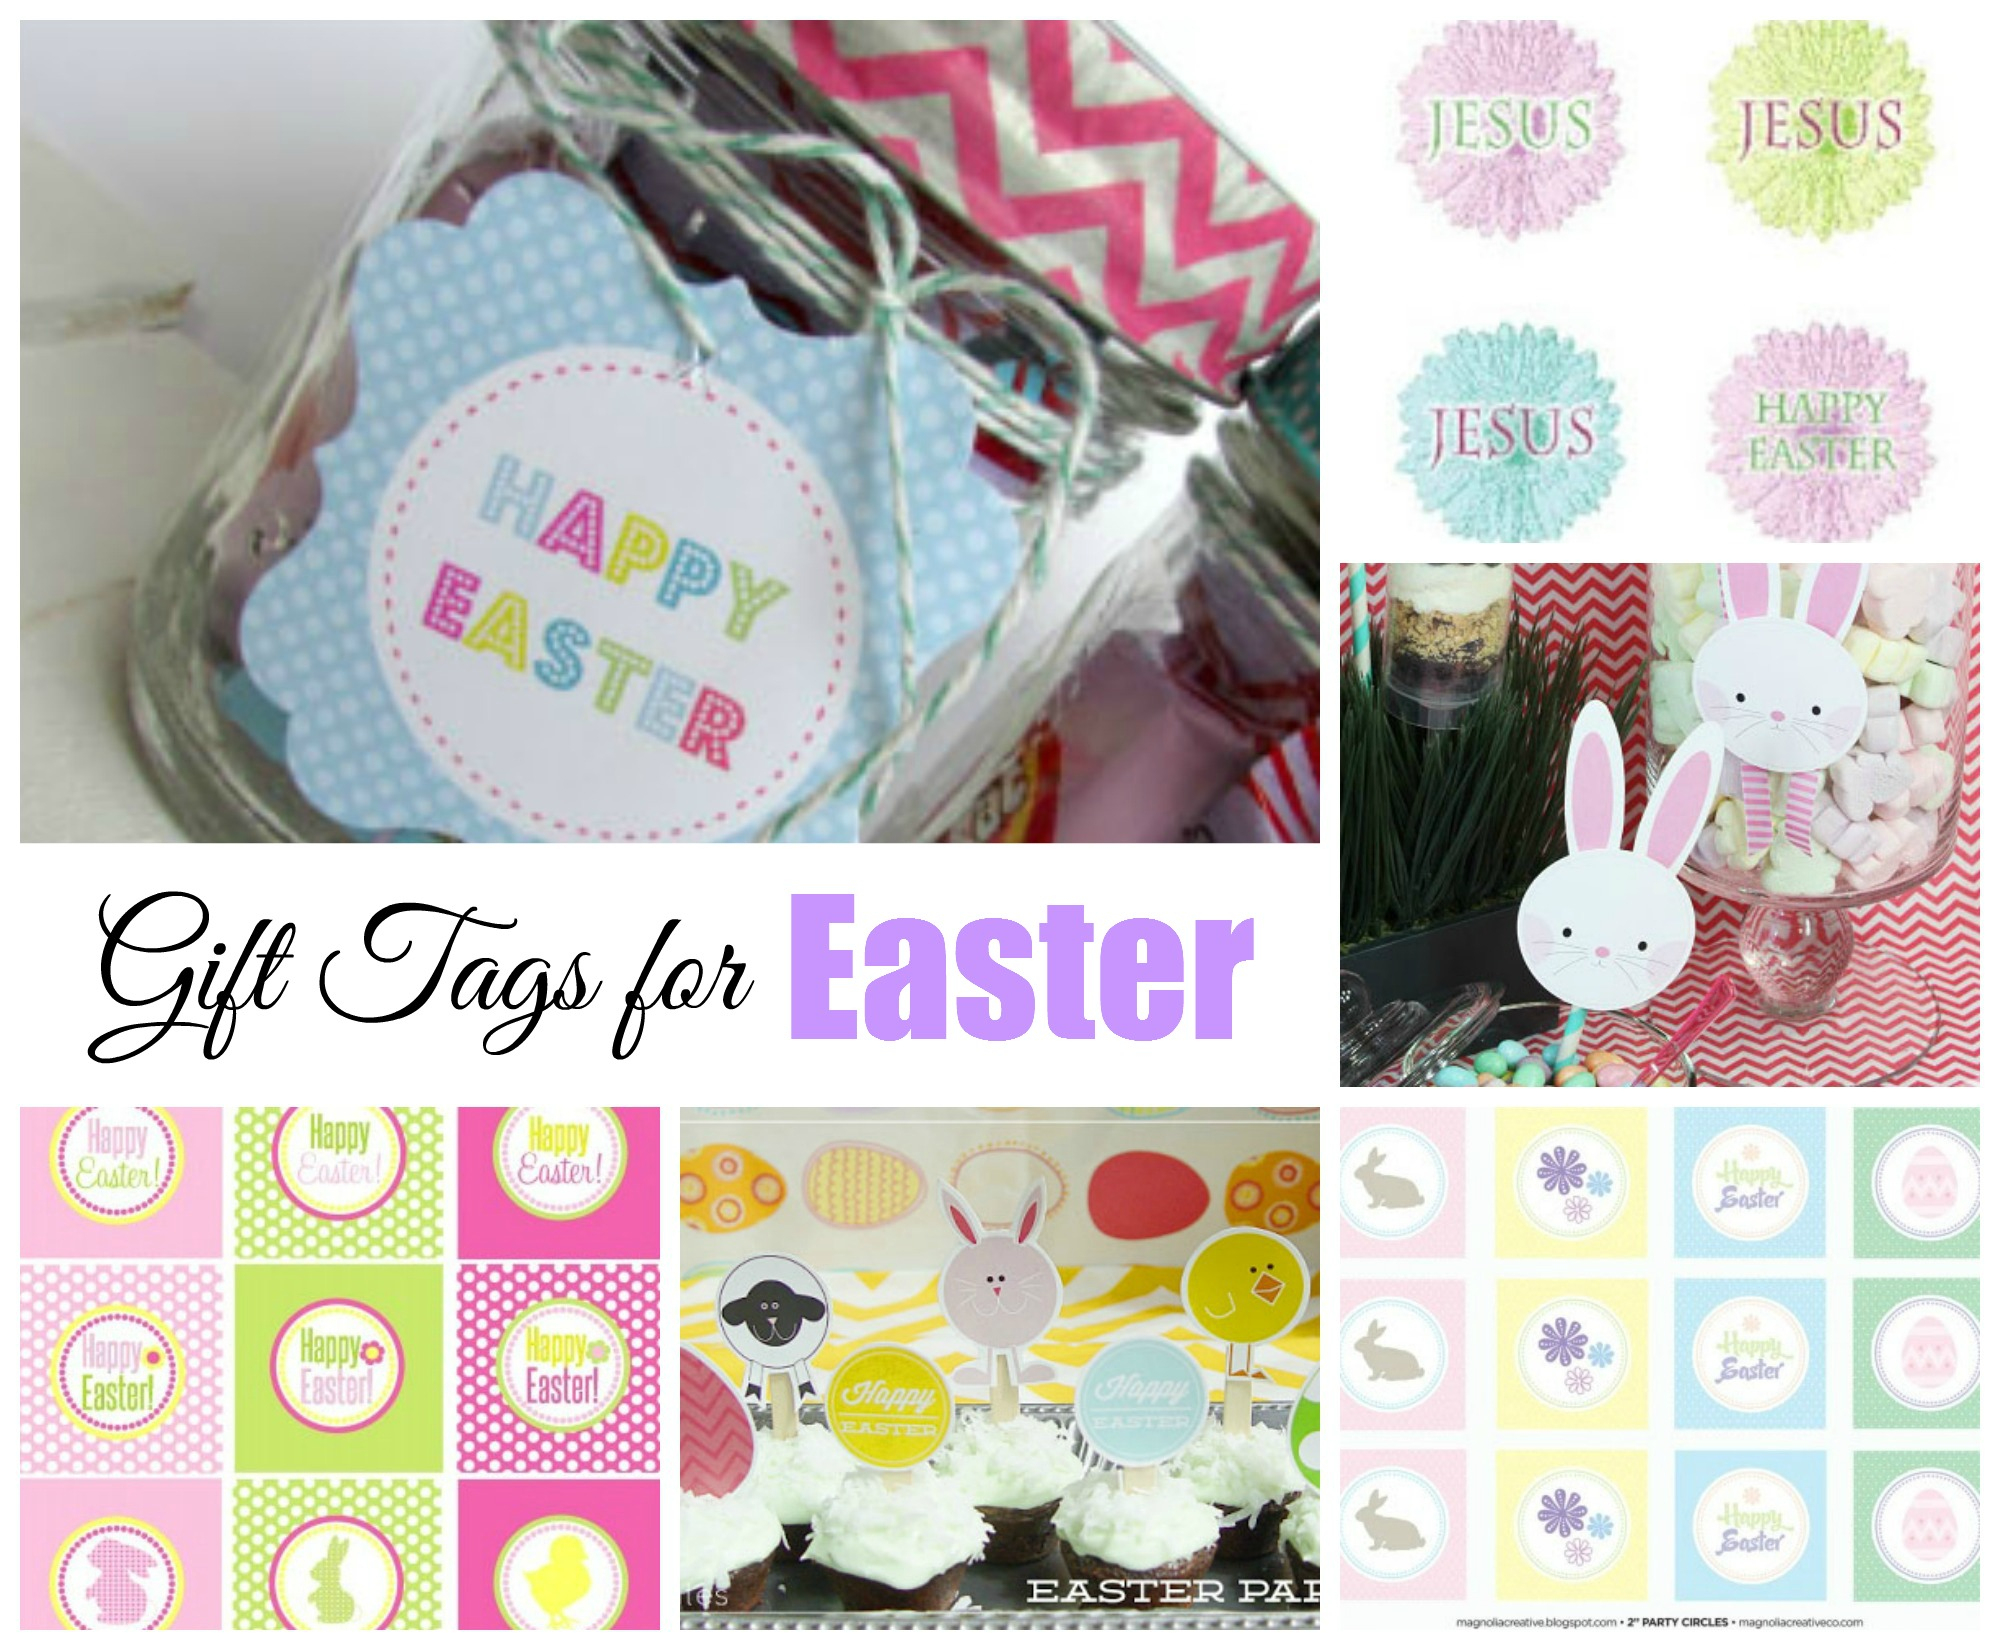 Easter Free Printable Gift Tags | Celebrating Holidays - Free Printable Easter Images